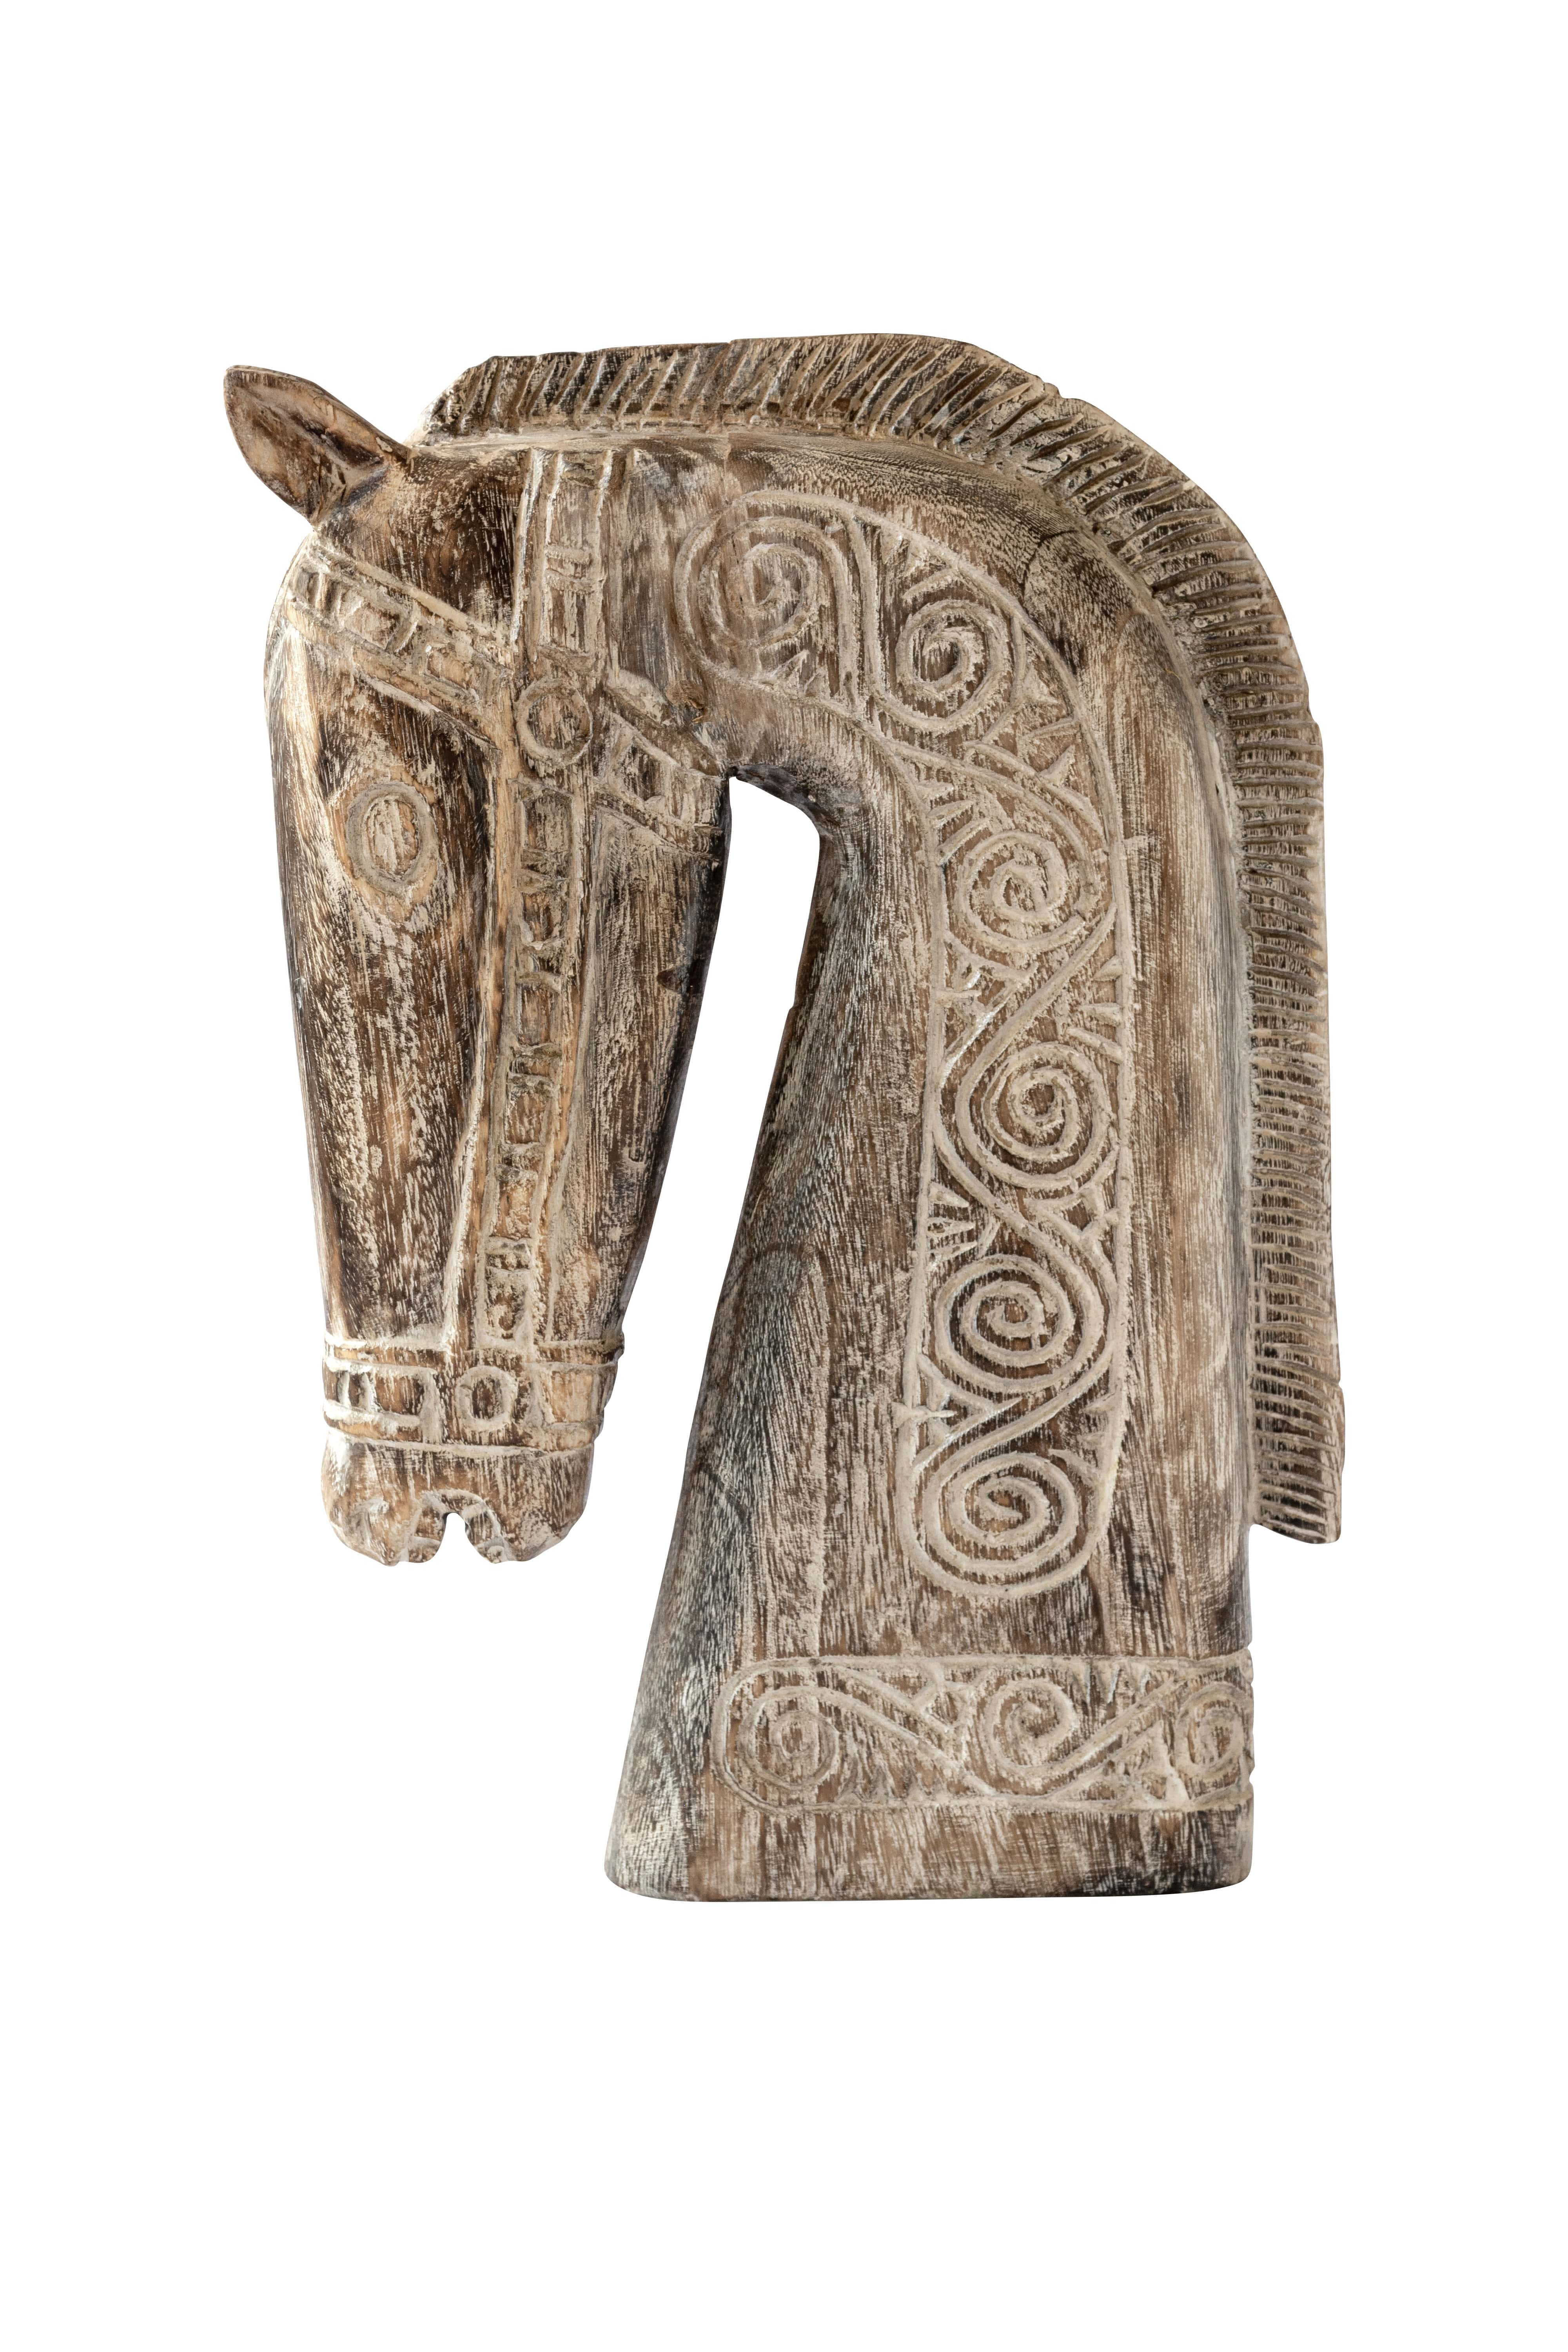 Horse sculpture carved in wood